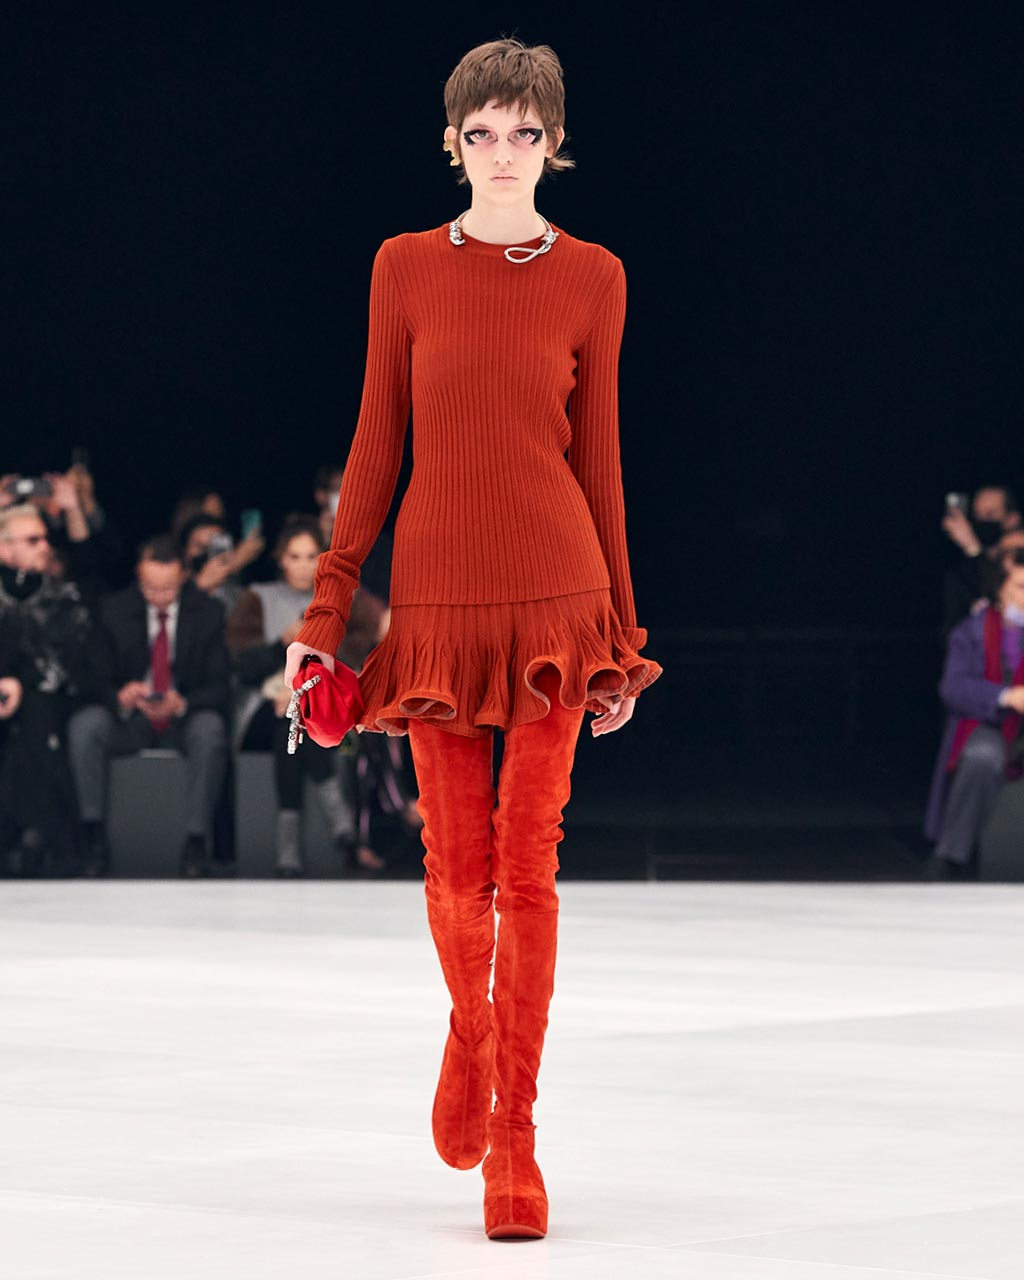 Spring Summer 2022 collection Look 13